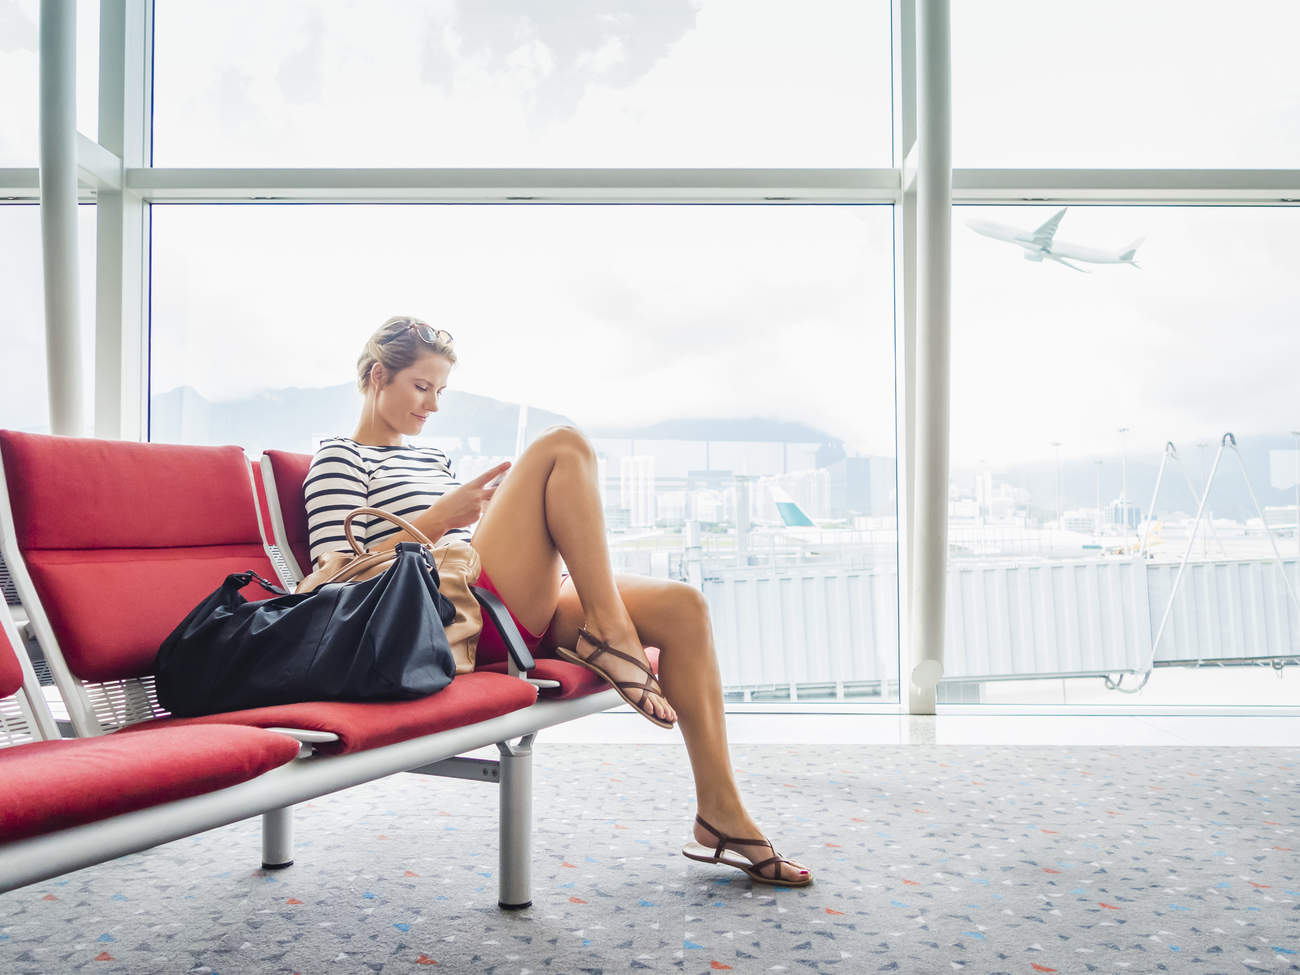 airport-travel-flying